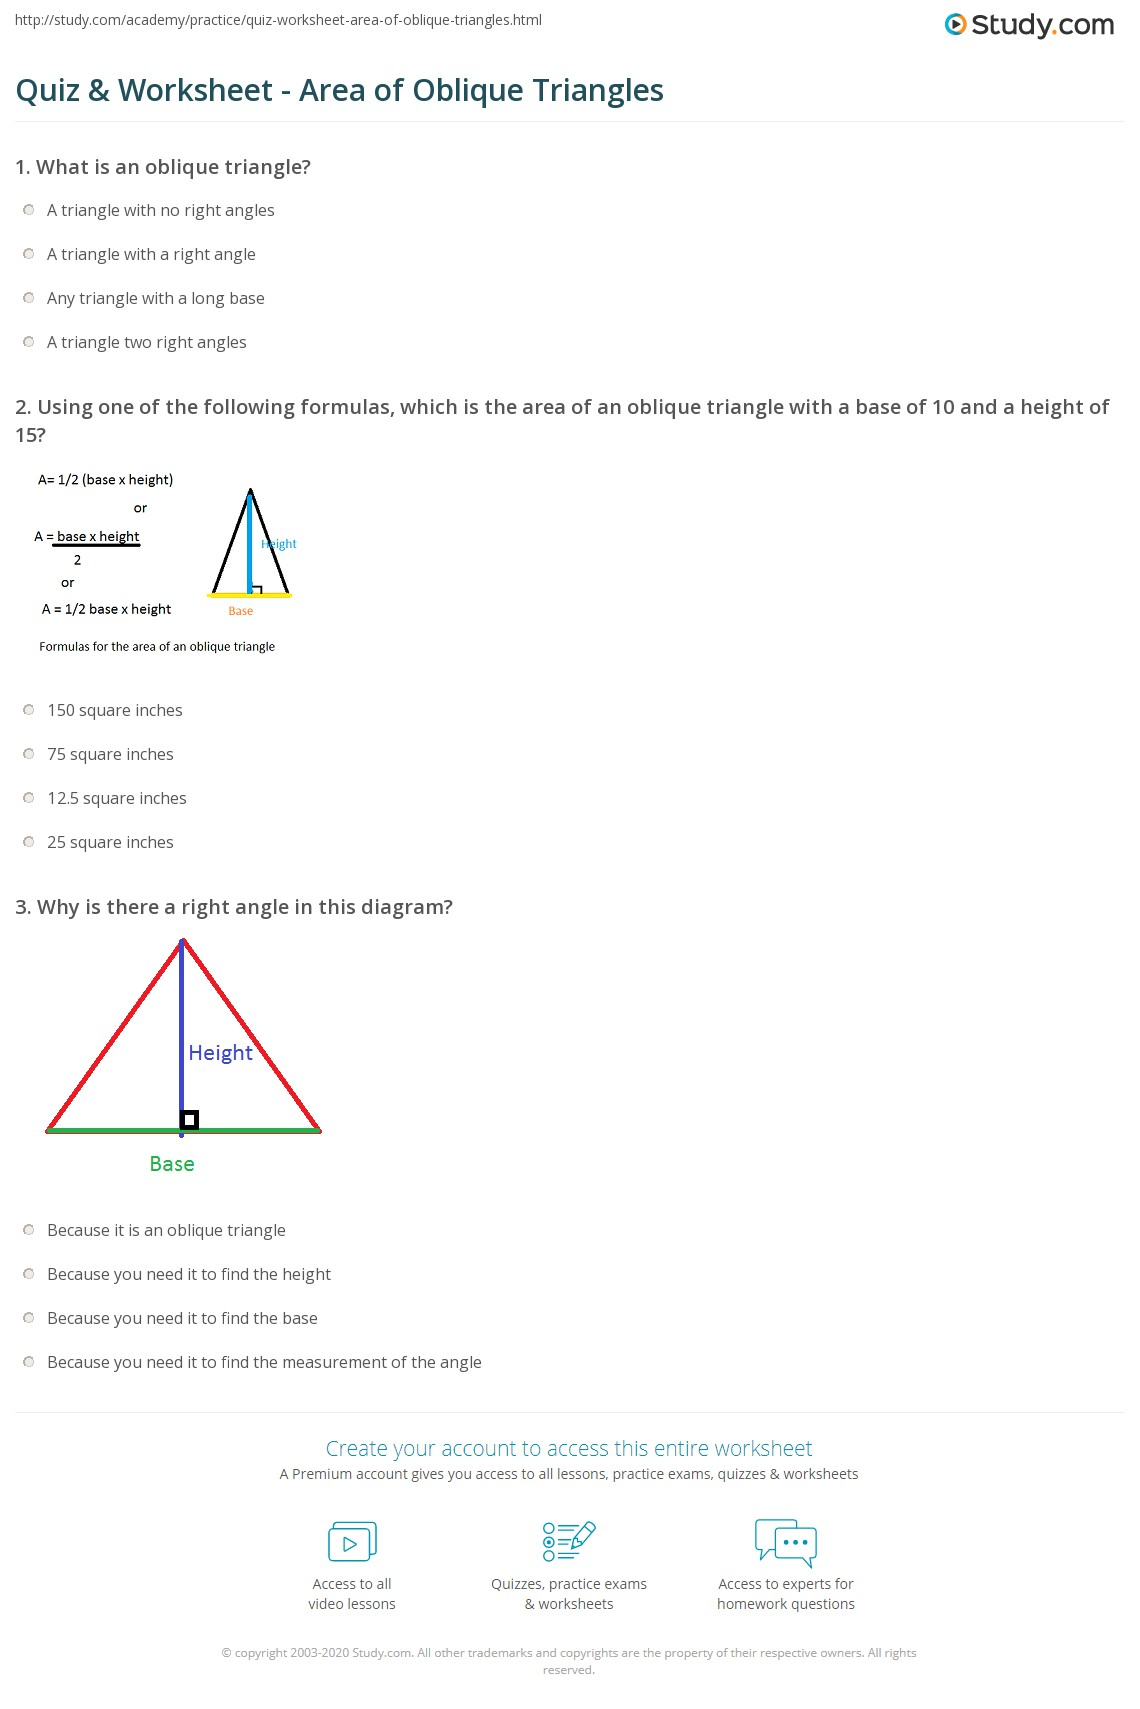 Print How To Find The Area Of An Oblique Triangle Worksheet